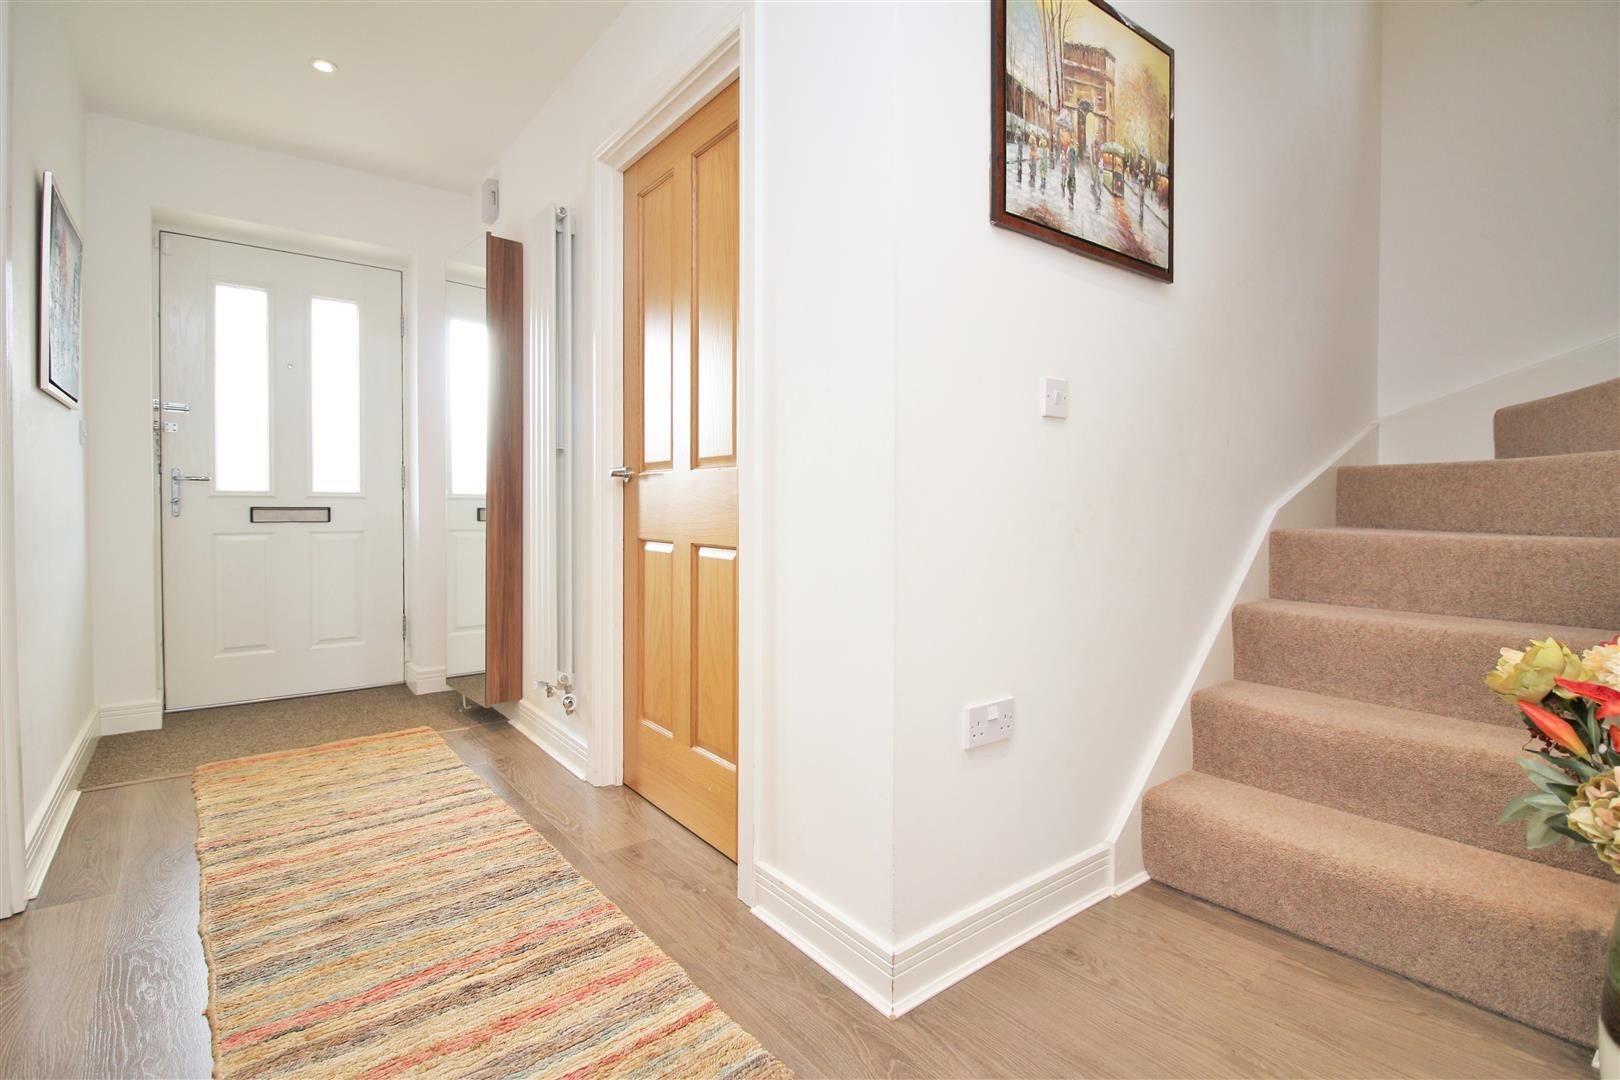 4 bed to rent in Leavesden - (Property Image 11)